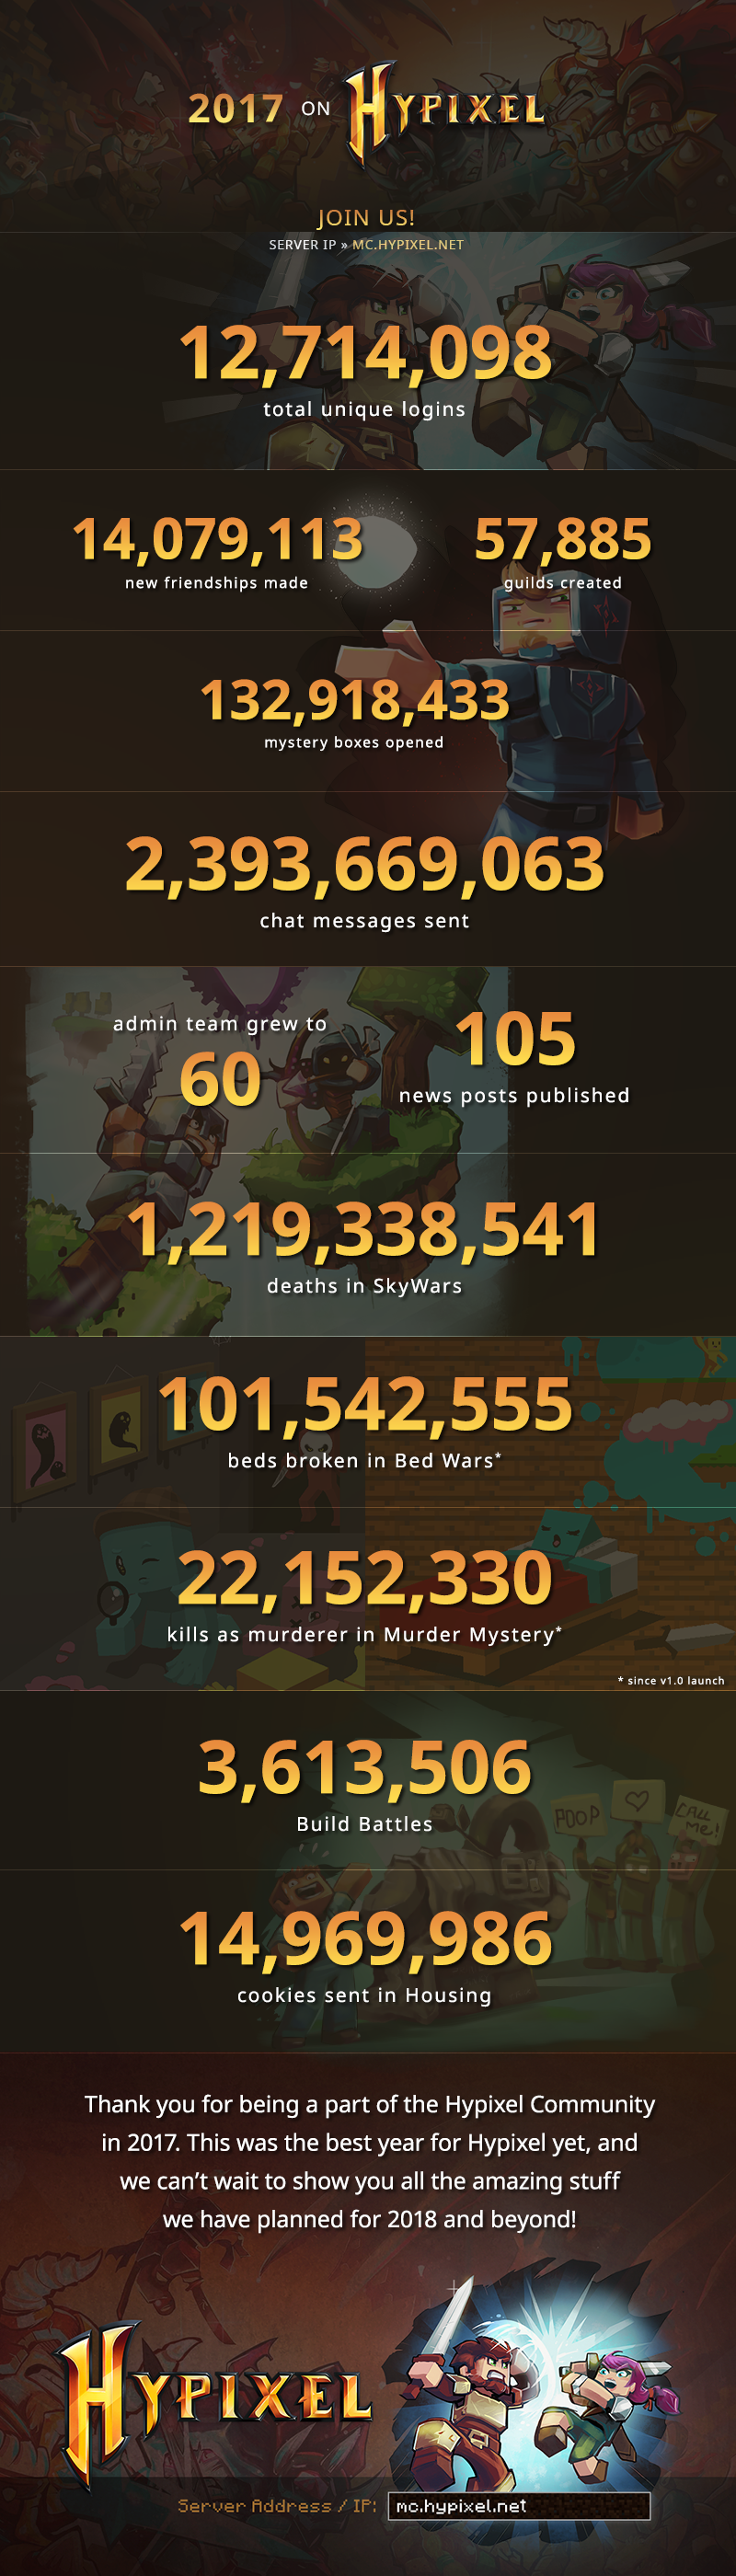 2017 roundup generate your unique stats on hypixel hypixel